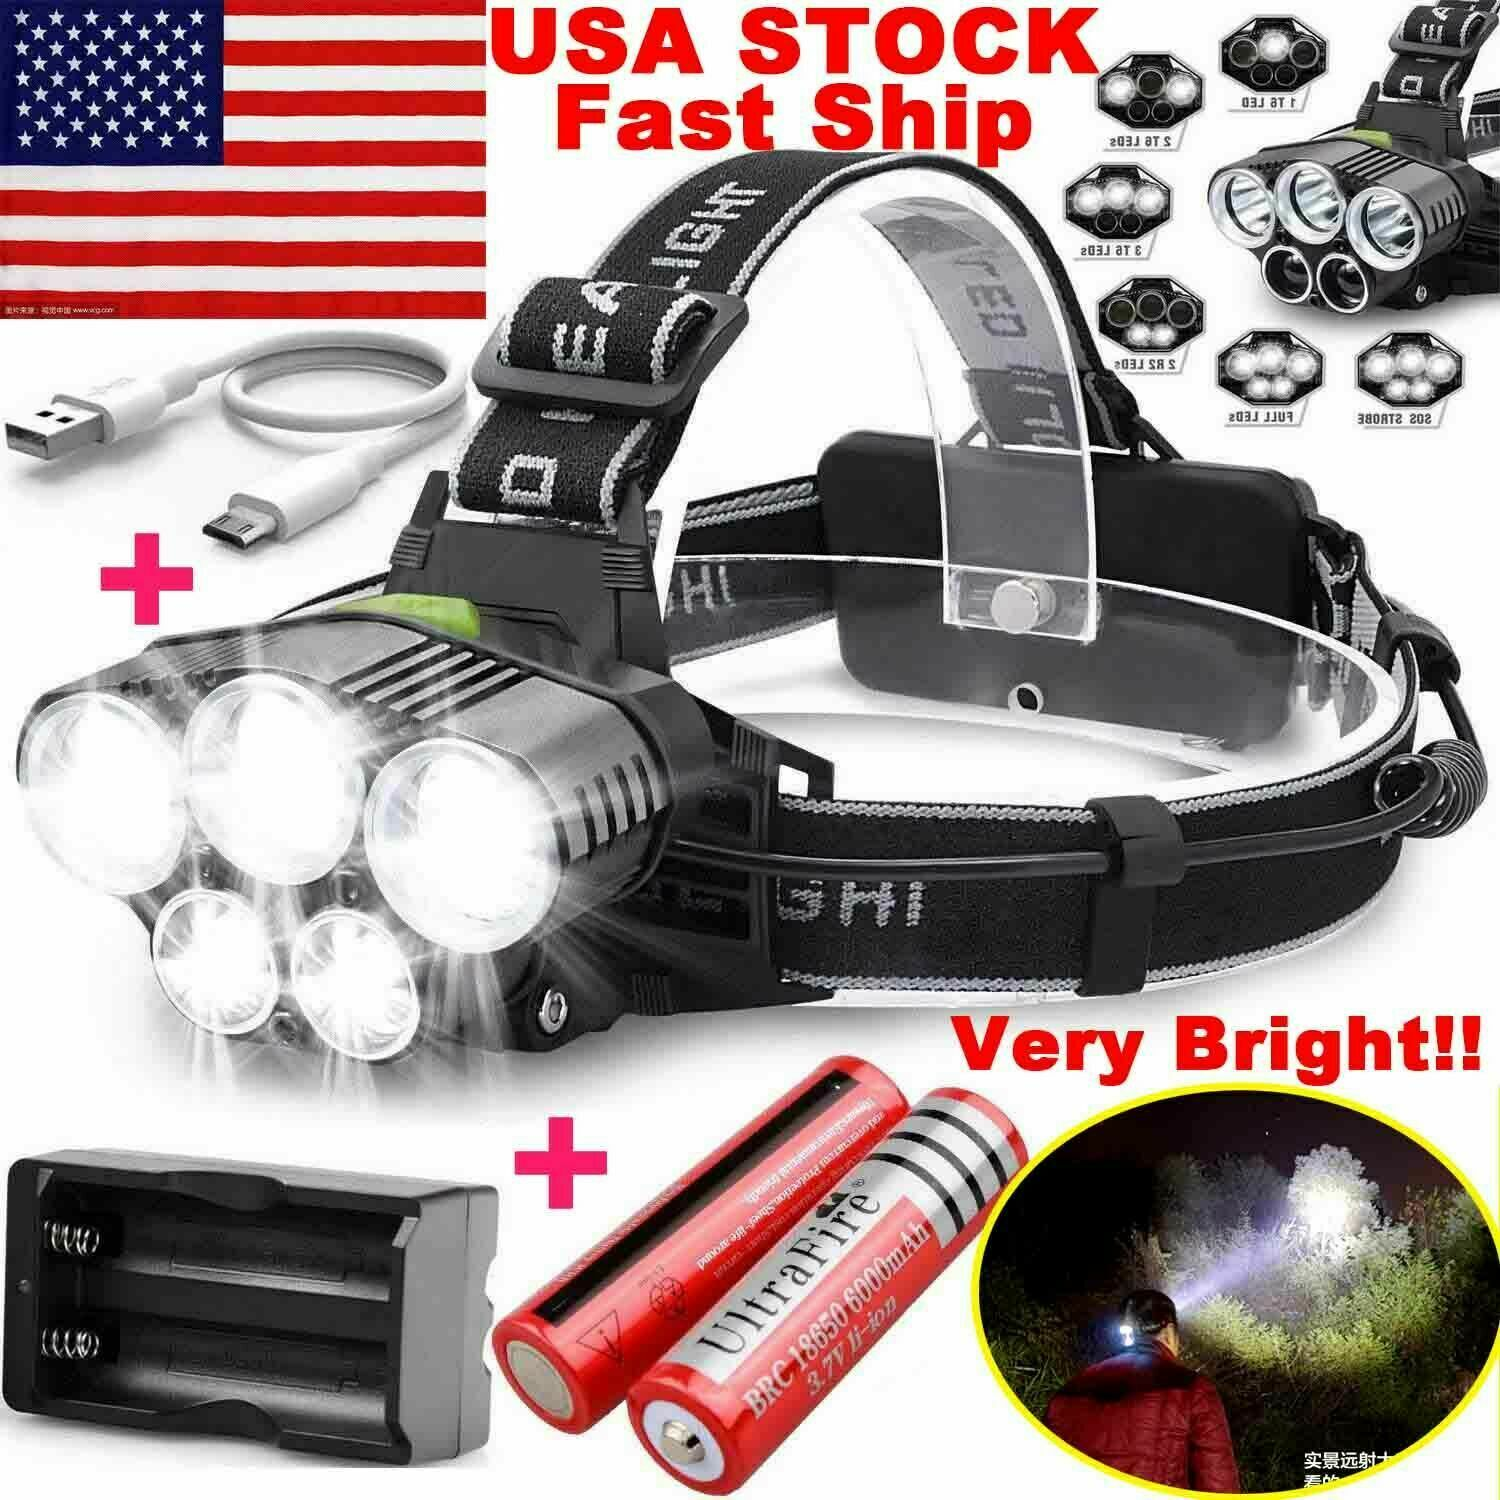 750000LM 5X T6 LED Headlamp Rechargeable Head Light Flashlight Torch Lamp USA Camping & Hiking